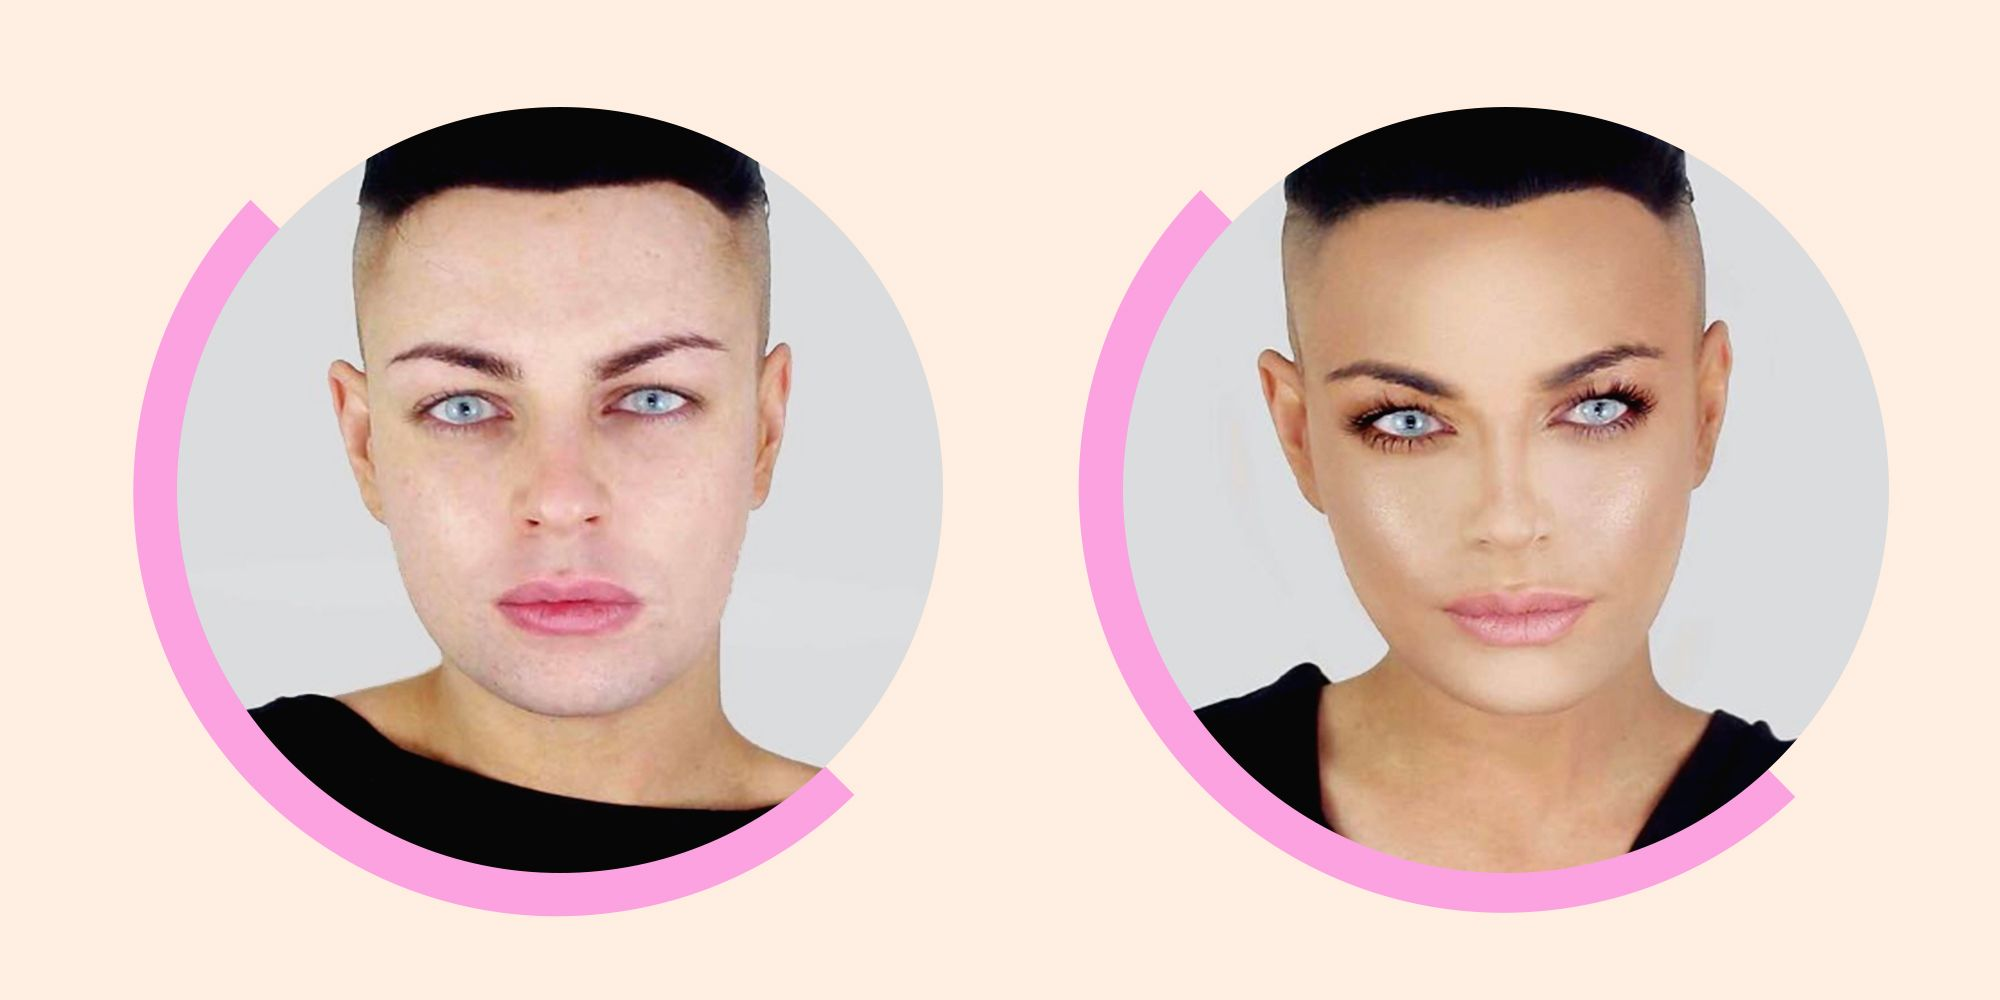 The 9 Best Makeup Tricks for Transgender Women - How to do Facial